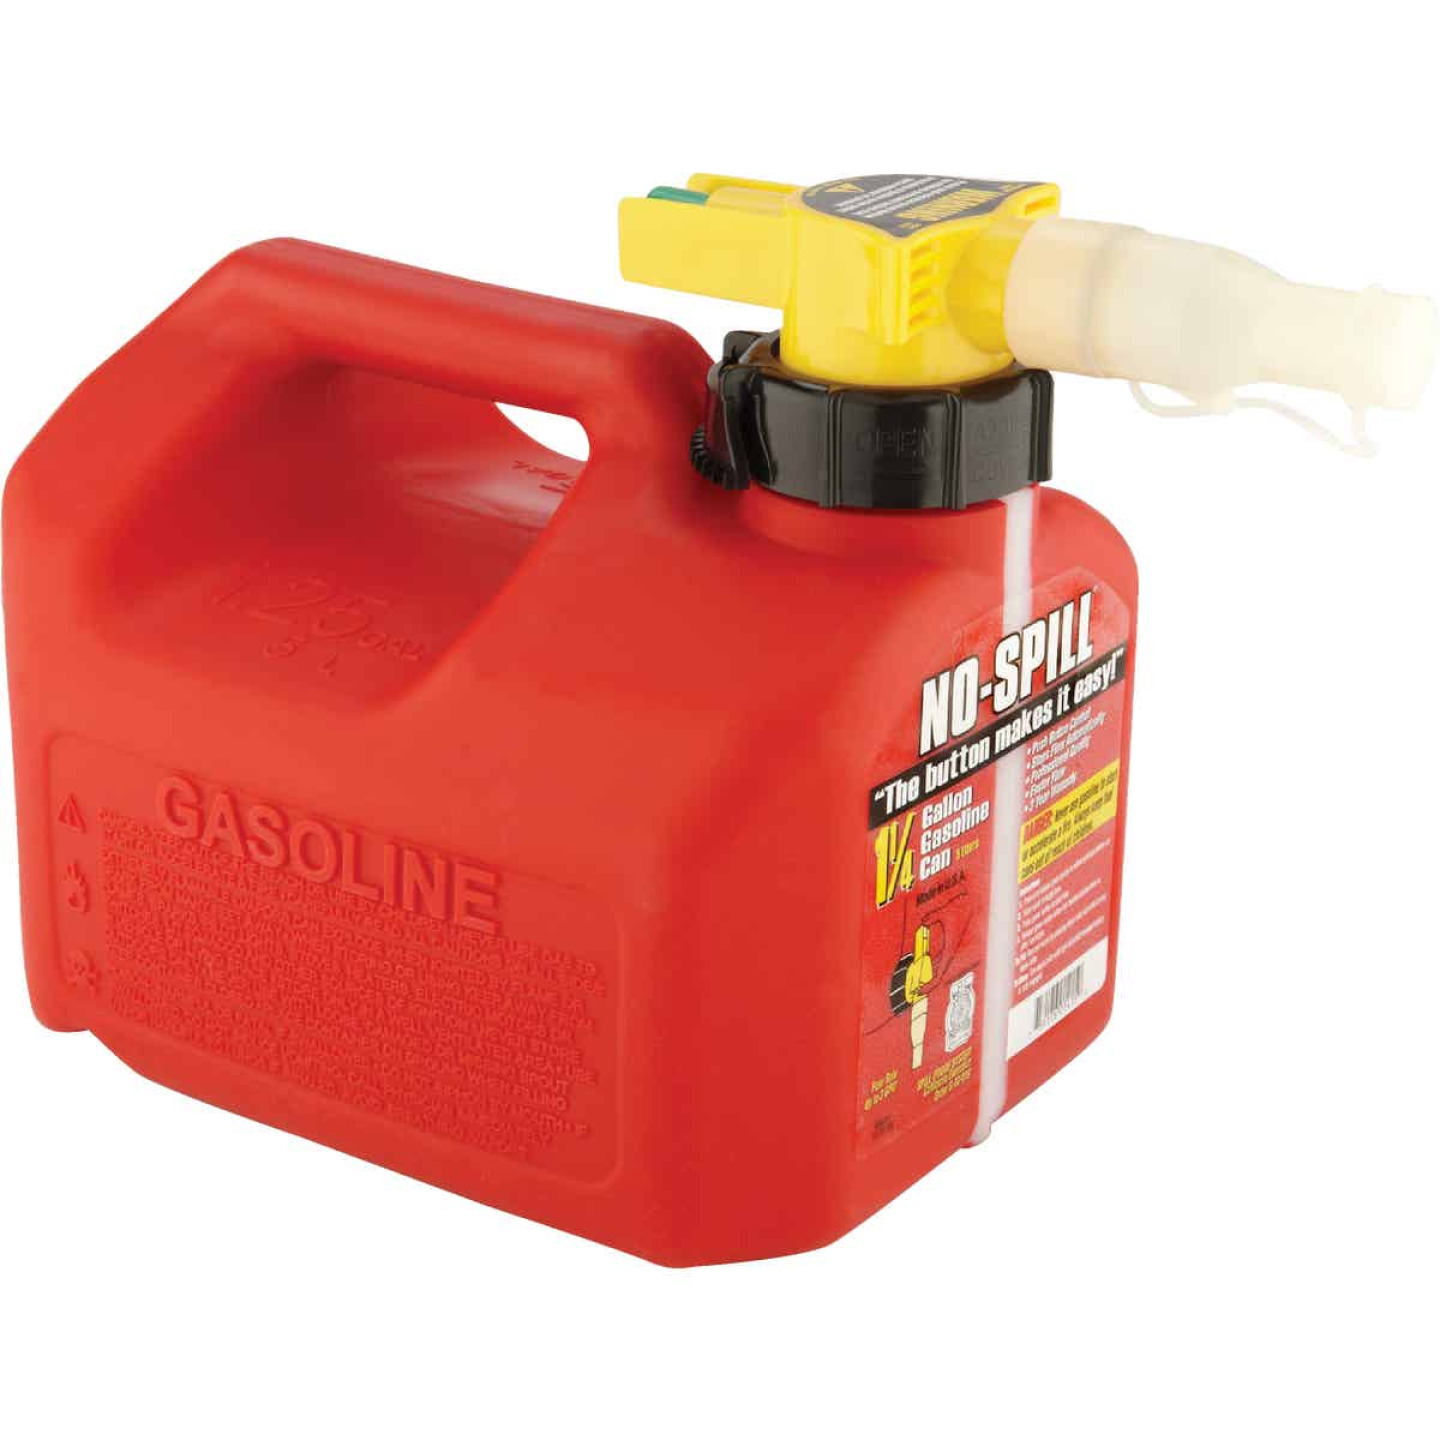 No-Spill 1-1/4 Gal. Plastic Gasoline Fuel Can, Red Image 2